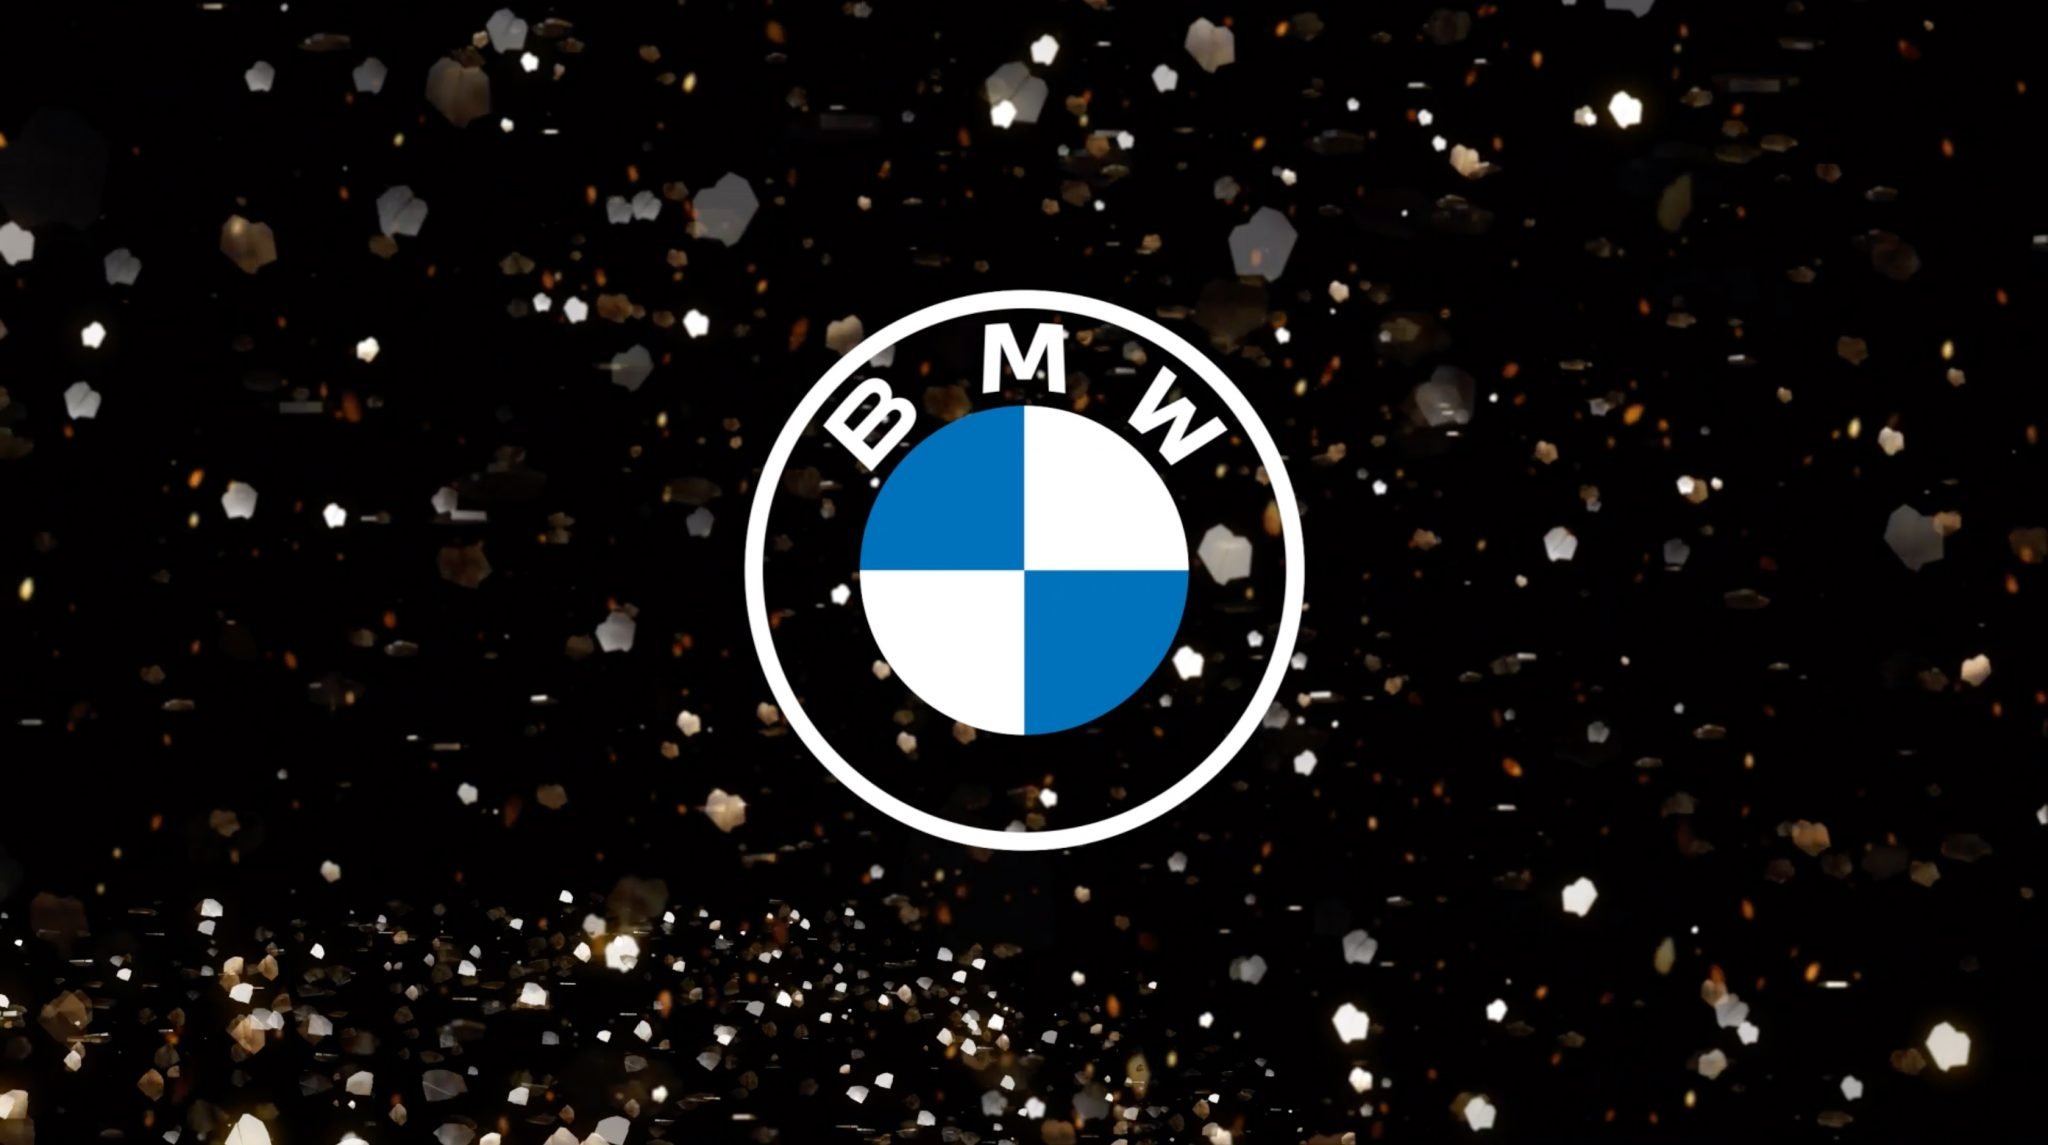 Nuovo marchio BMW